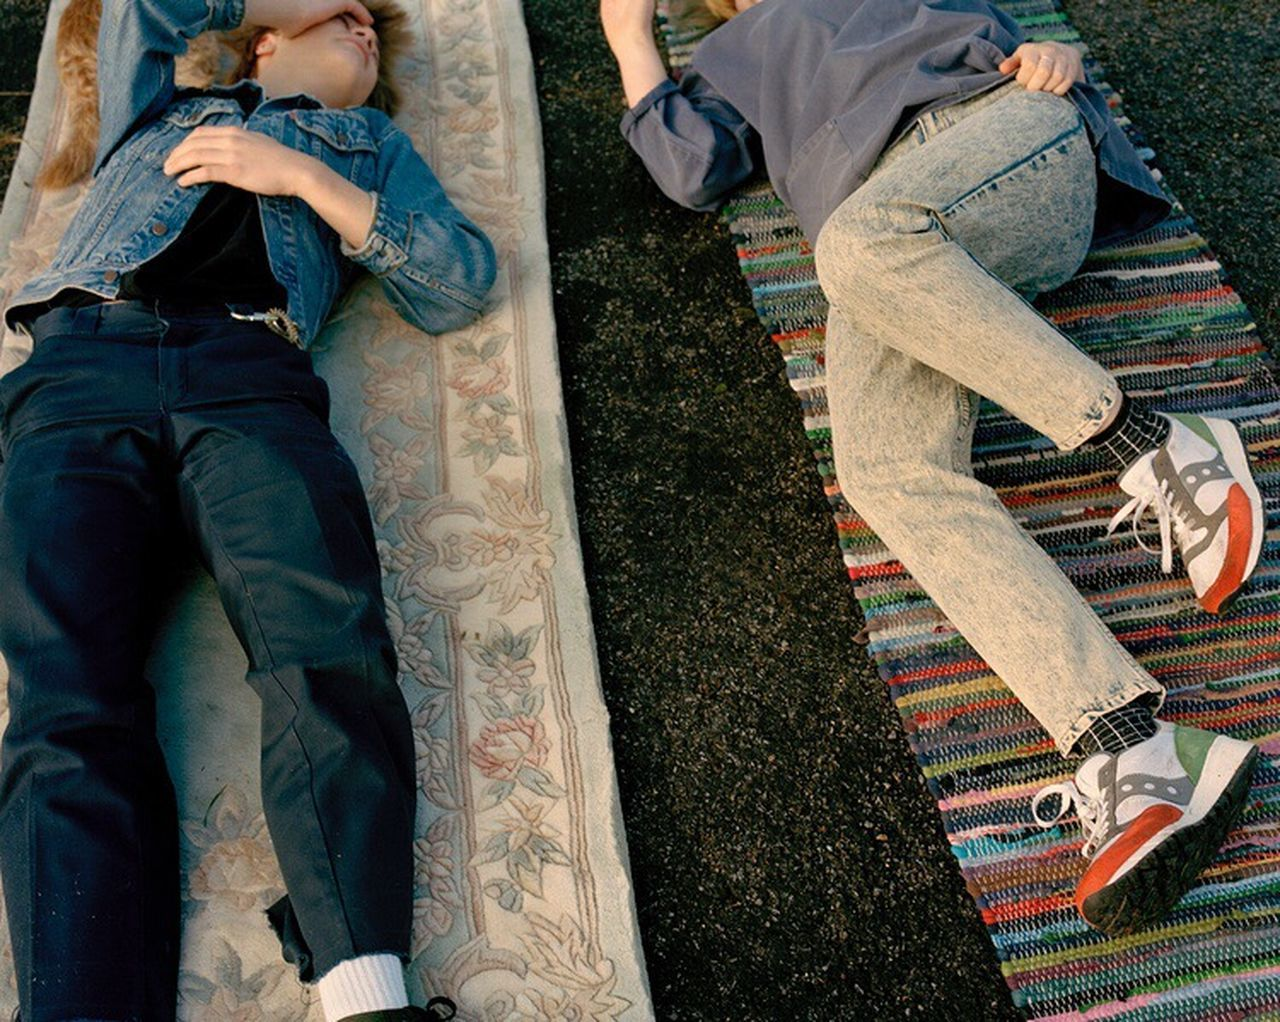 Noah & Ada, Suffolk 2016 filmisnotdead countryside burystedmunds suffolk Film February hometown friendship youth culture outdoors Relaxing lying down denim Jeans trainers